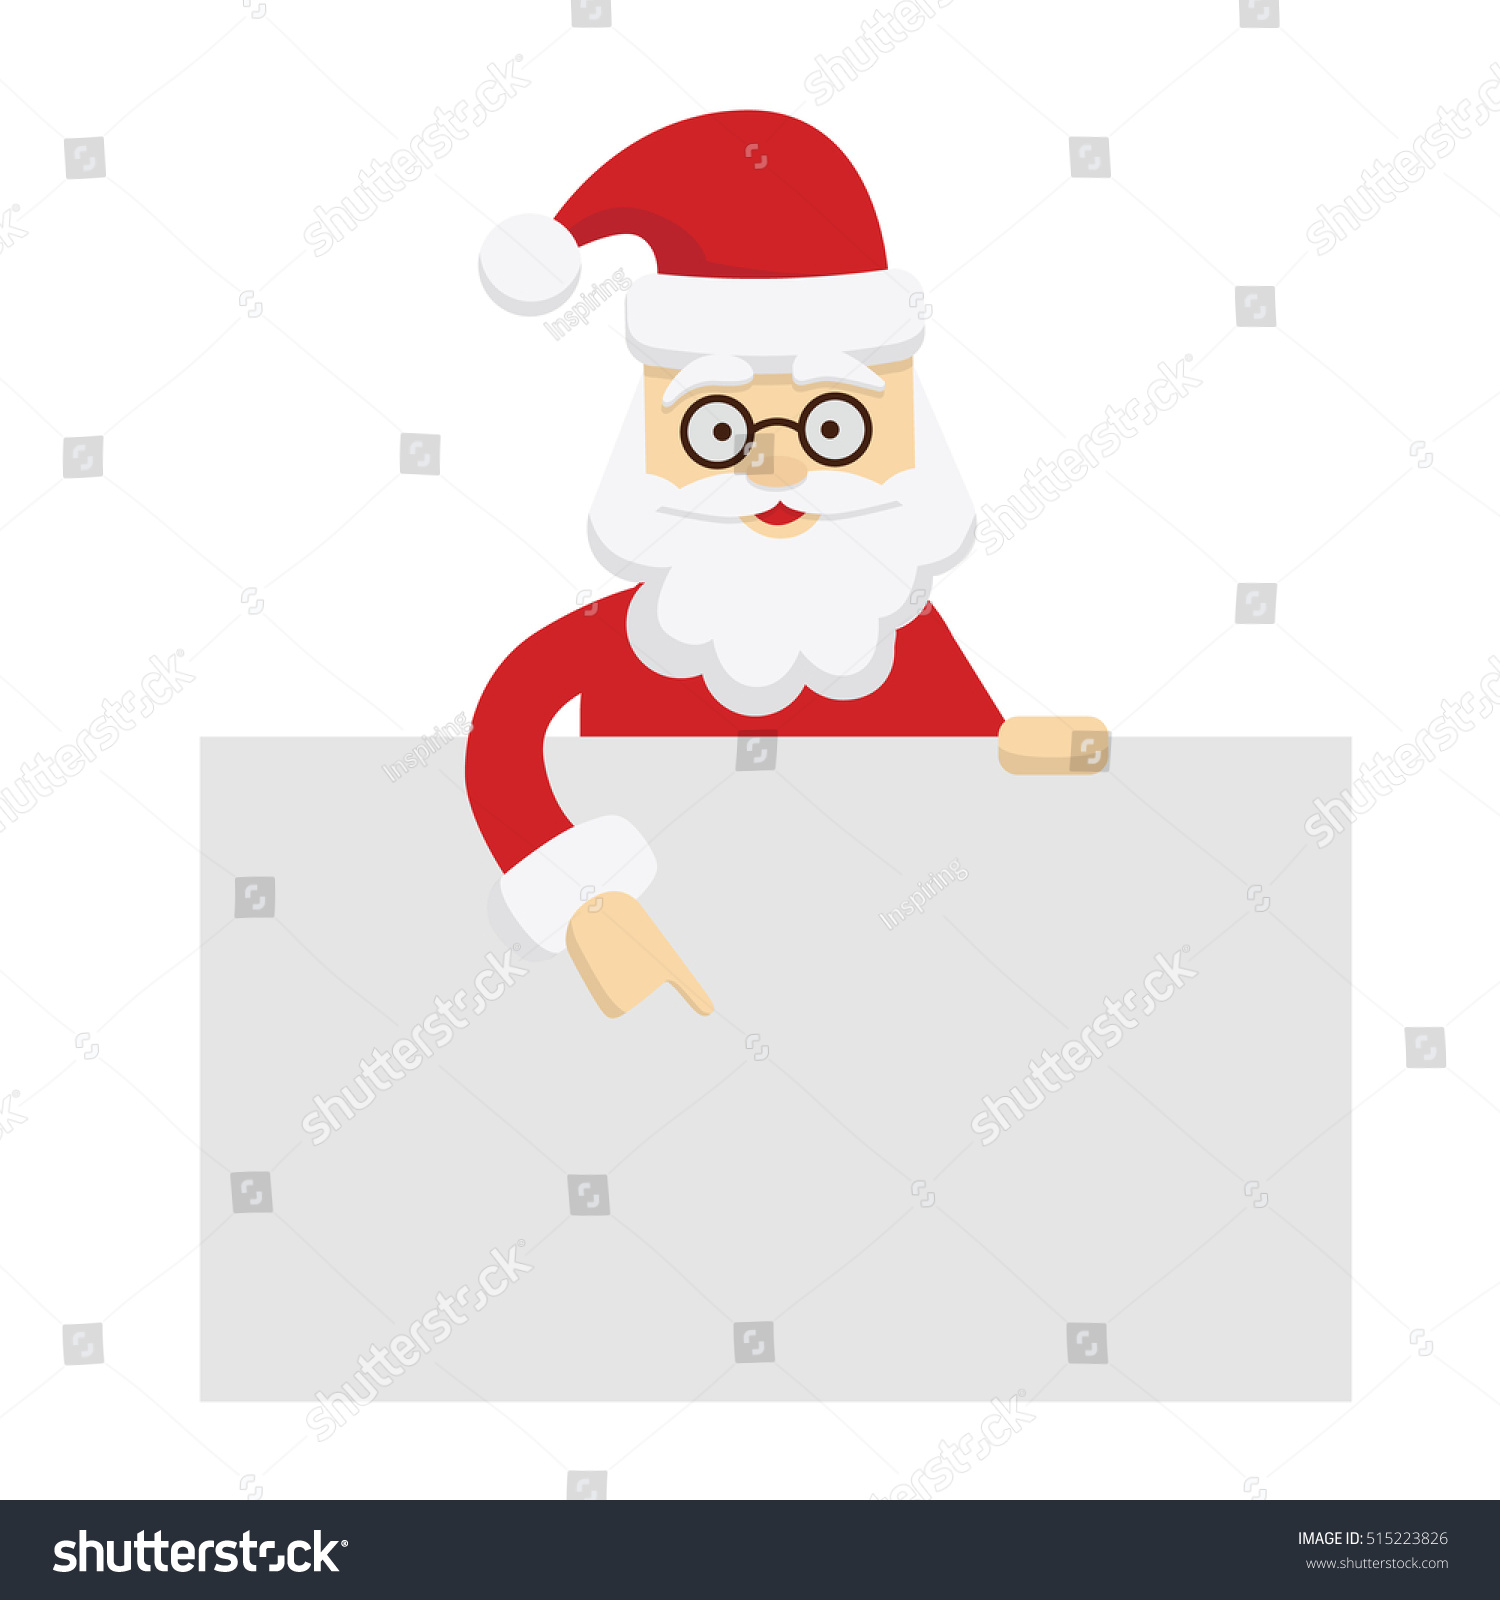 Santa Claus Template Isolated Santa Template Stock Vector (Royalty ...